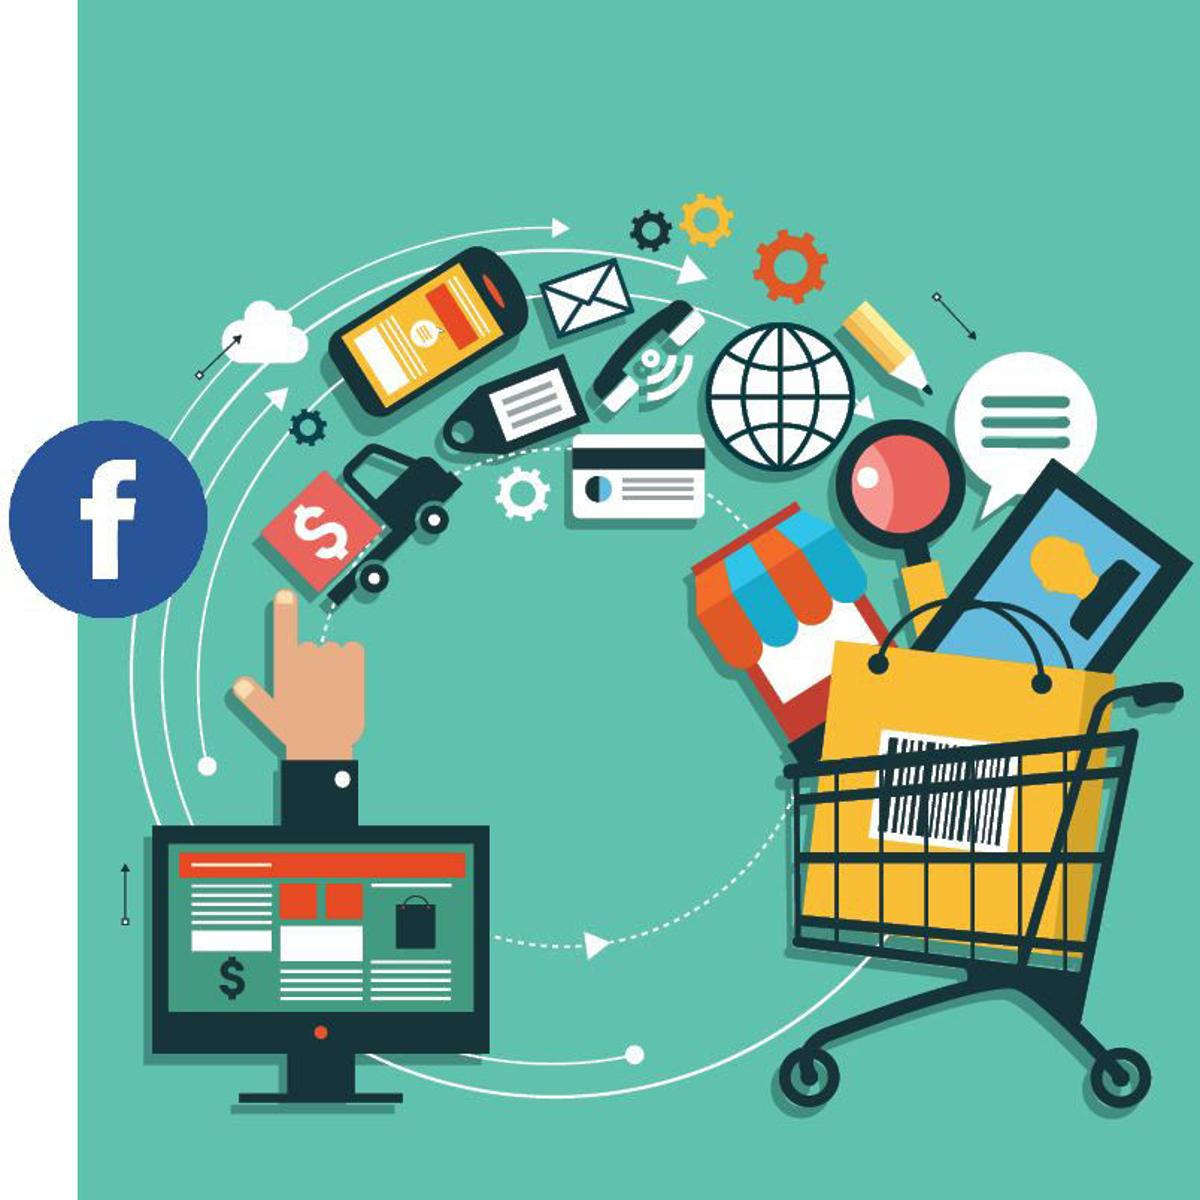 Facebook Marketplace idea came from buy-and-sell groups